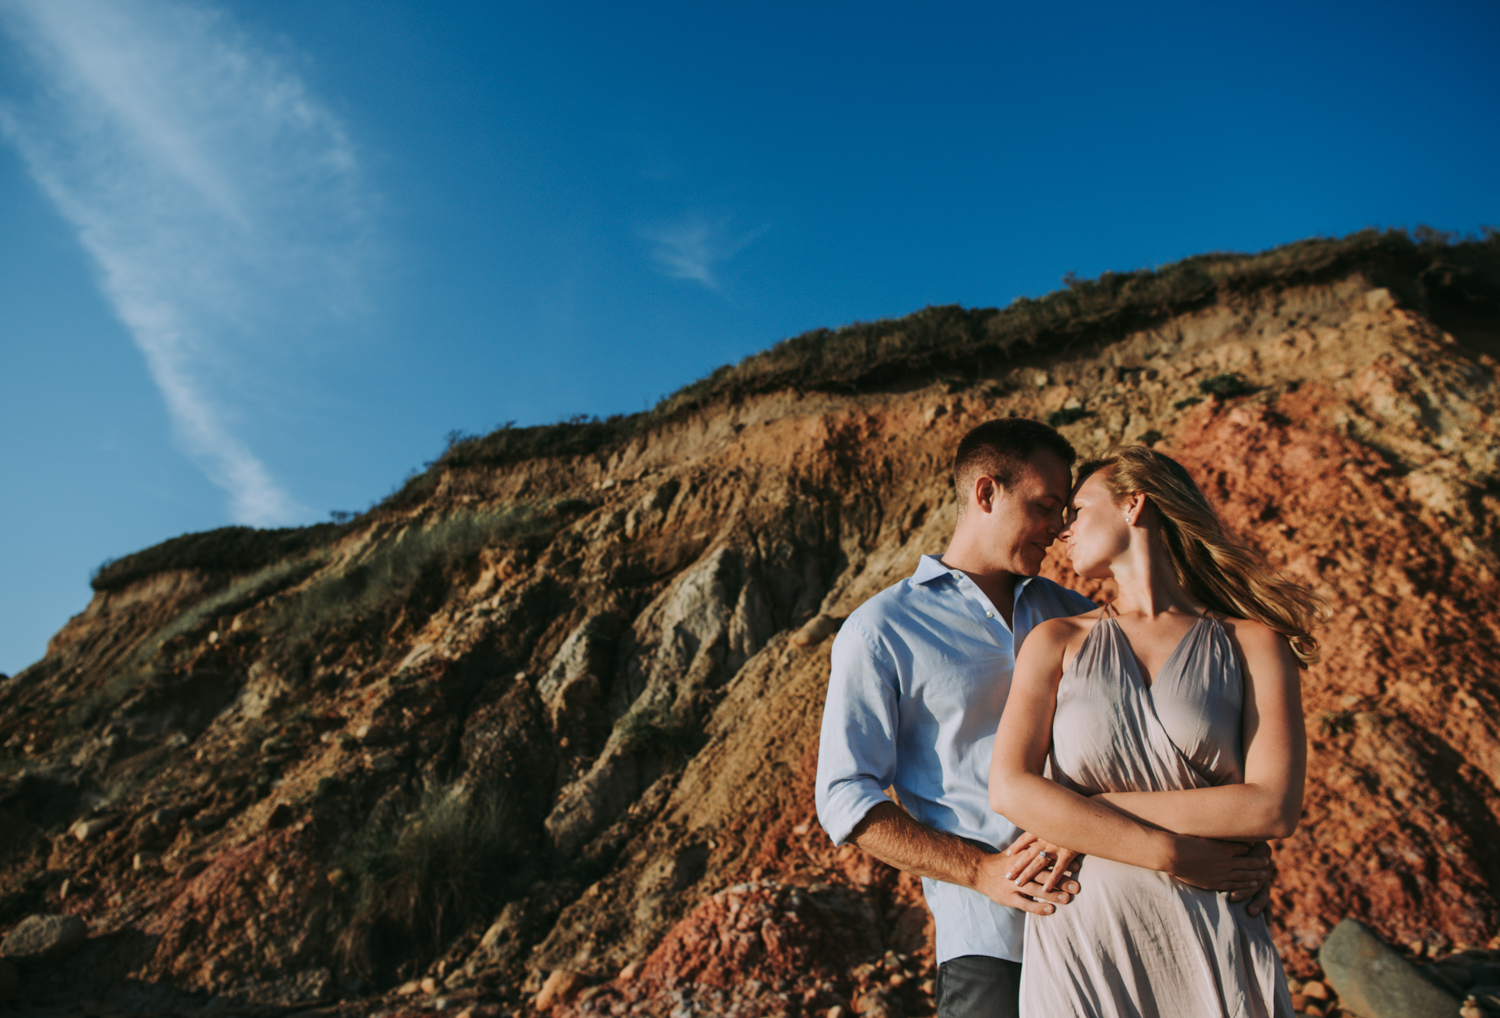 engagement_session_marthas_vineyard_DSC_4256.jpg